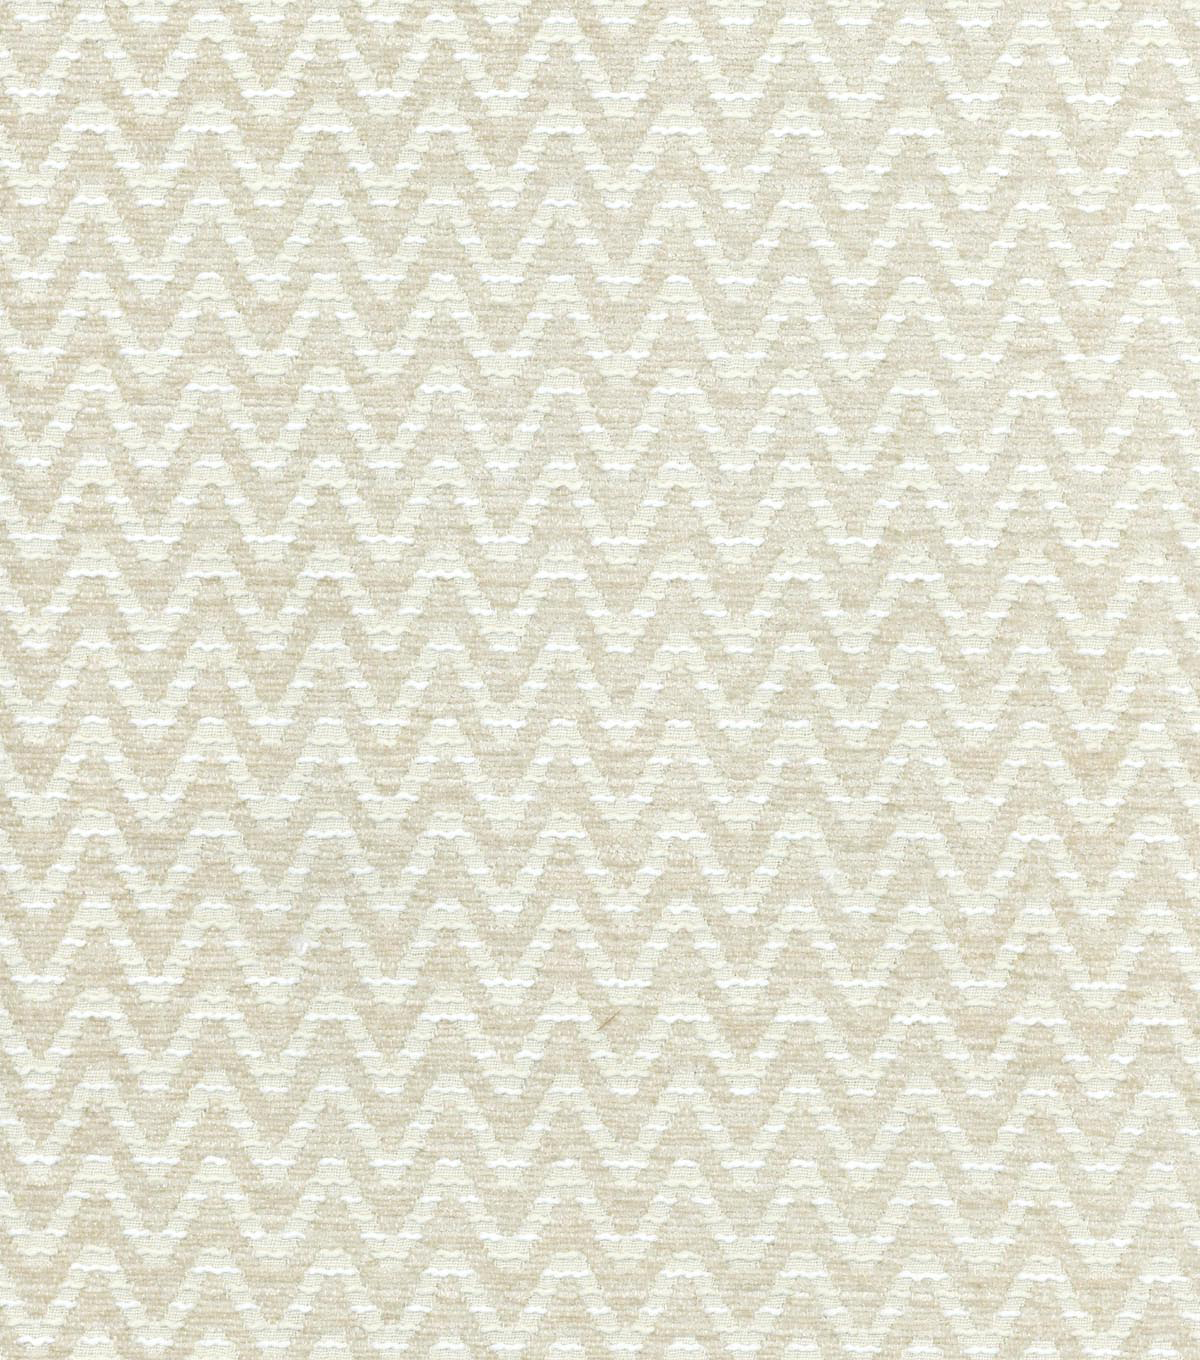 Home Decor 8\u0022x8\u0022 Swatch Fabric-Waverly Wave of Affection Sugarcane